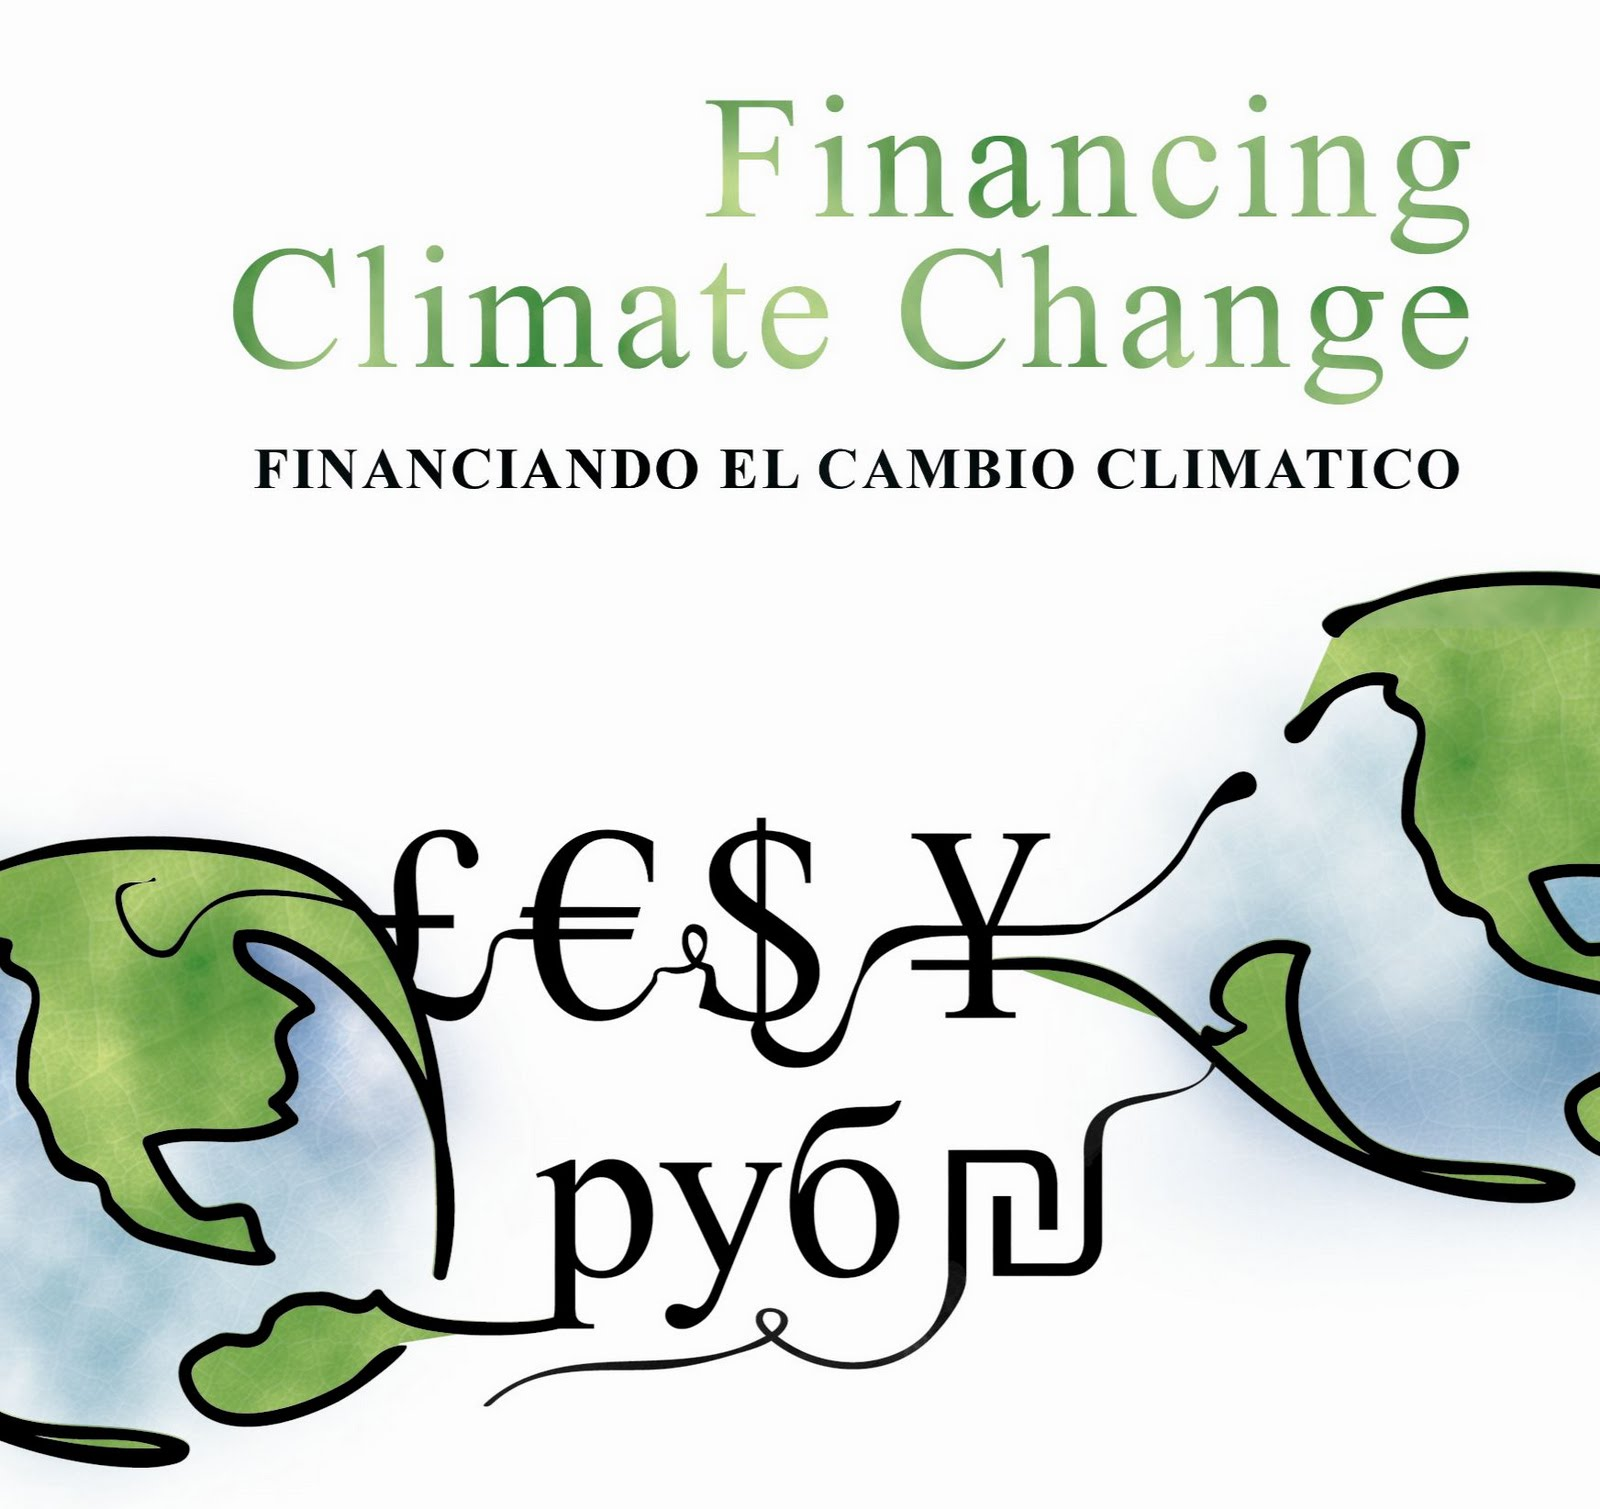 climate change financing Governments in both developed and developing countries are recognizing that climate change is already affecting the economic and social development of these vulnerable communities in.